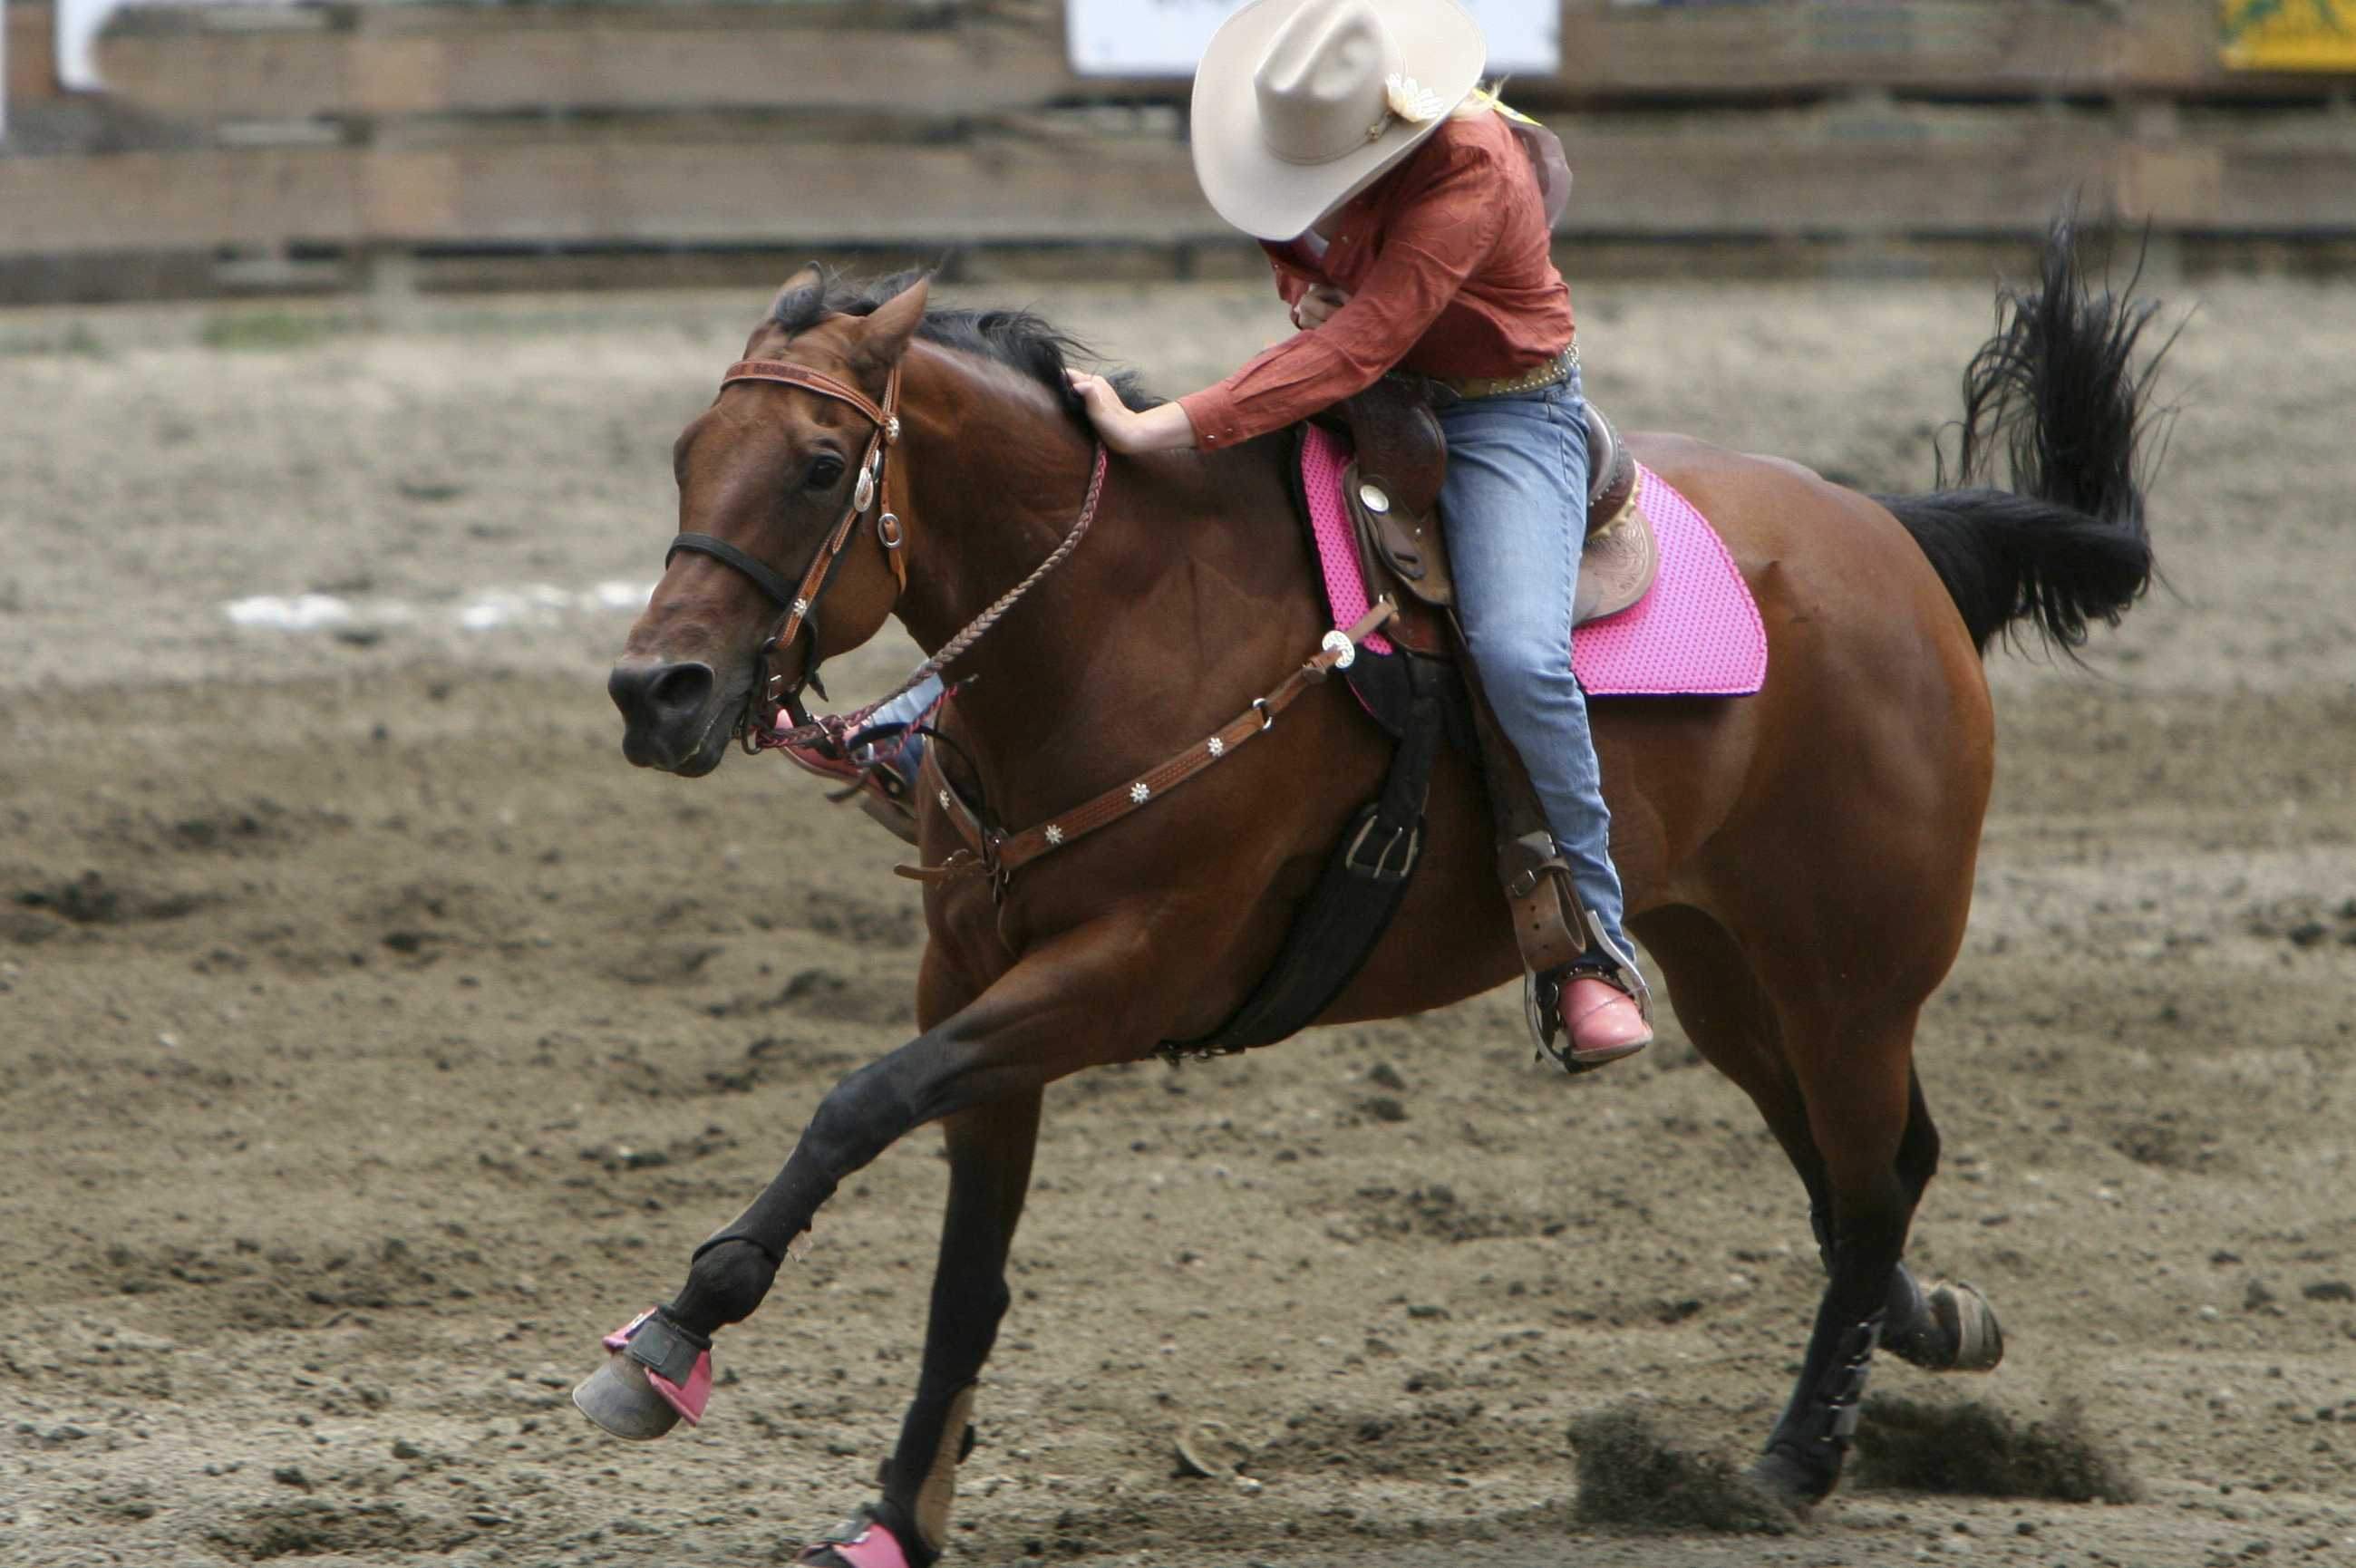 woman at rodeo